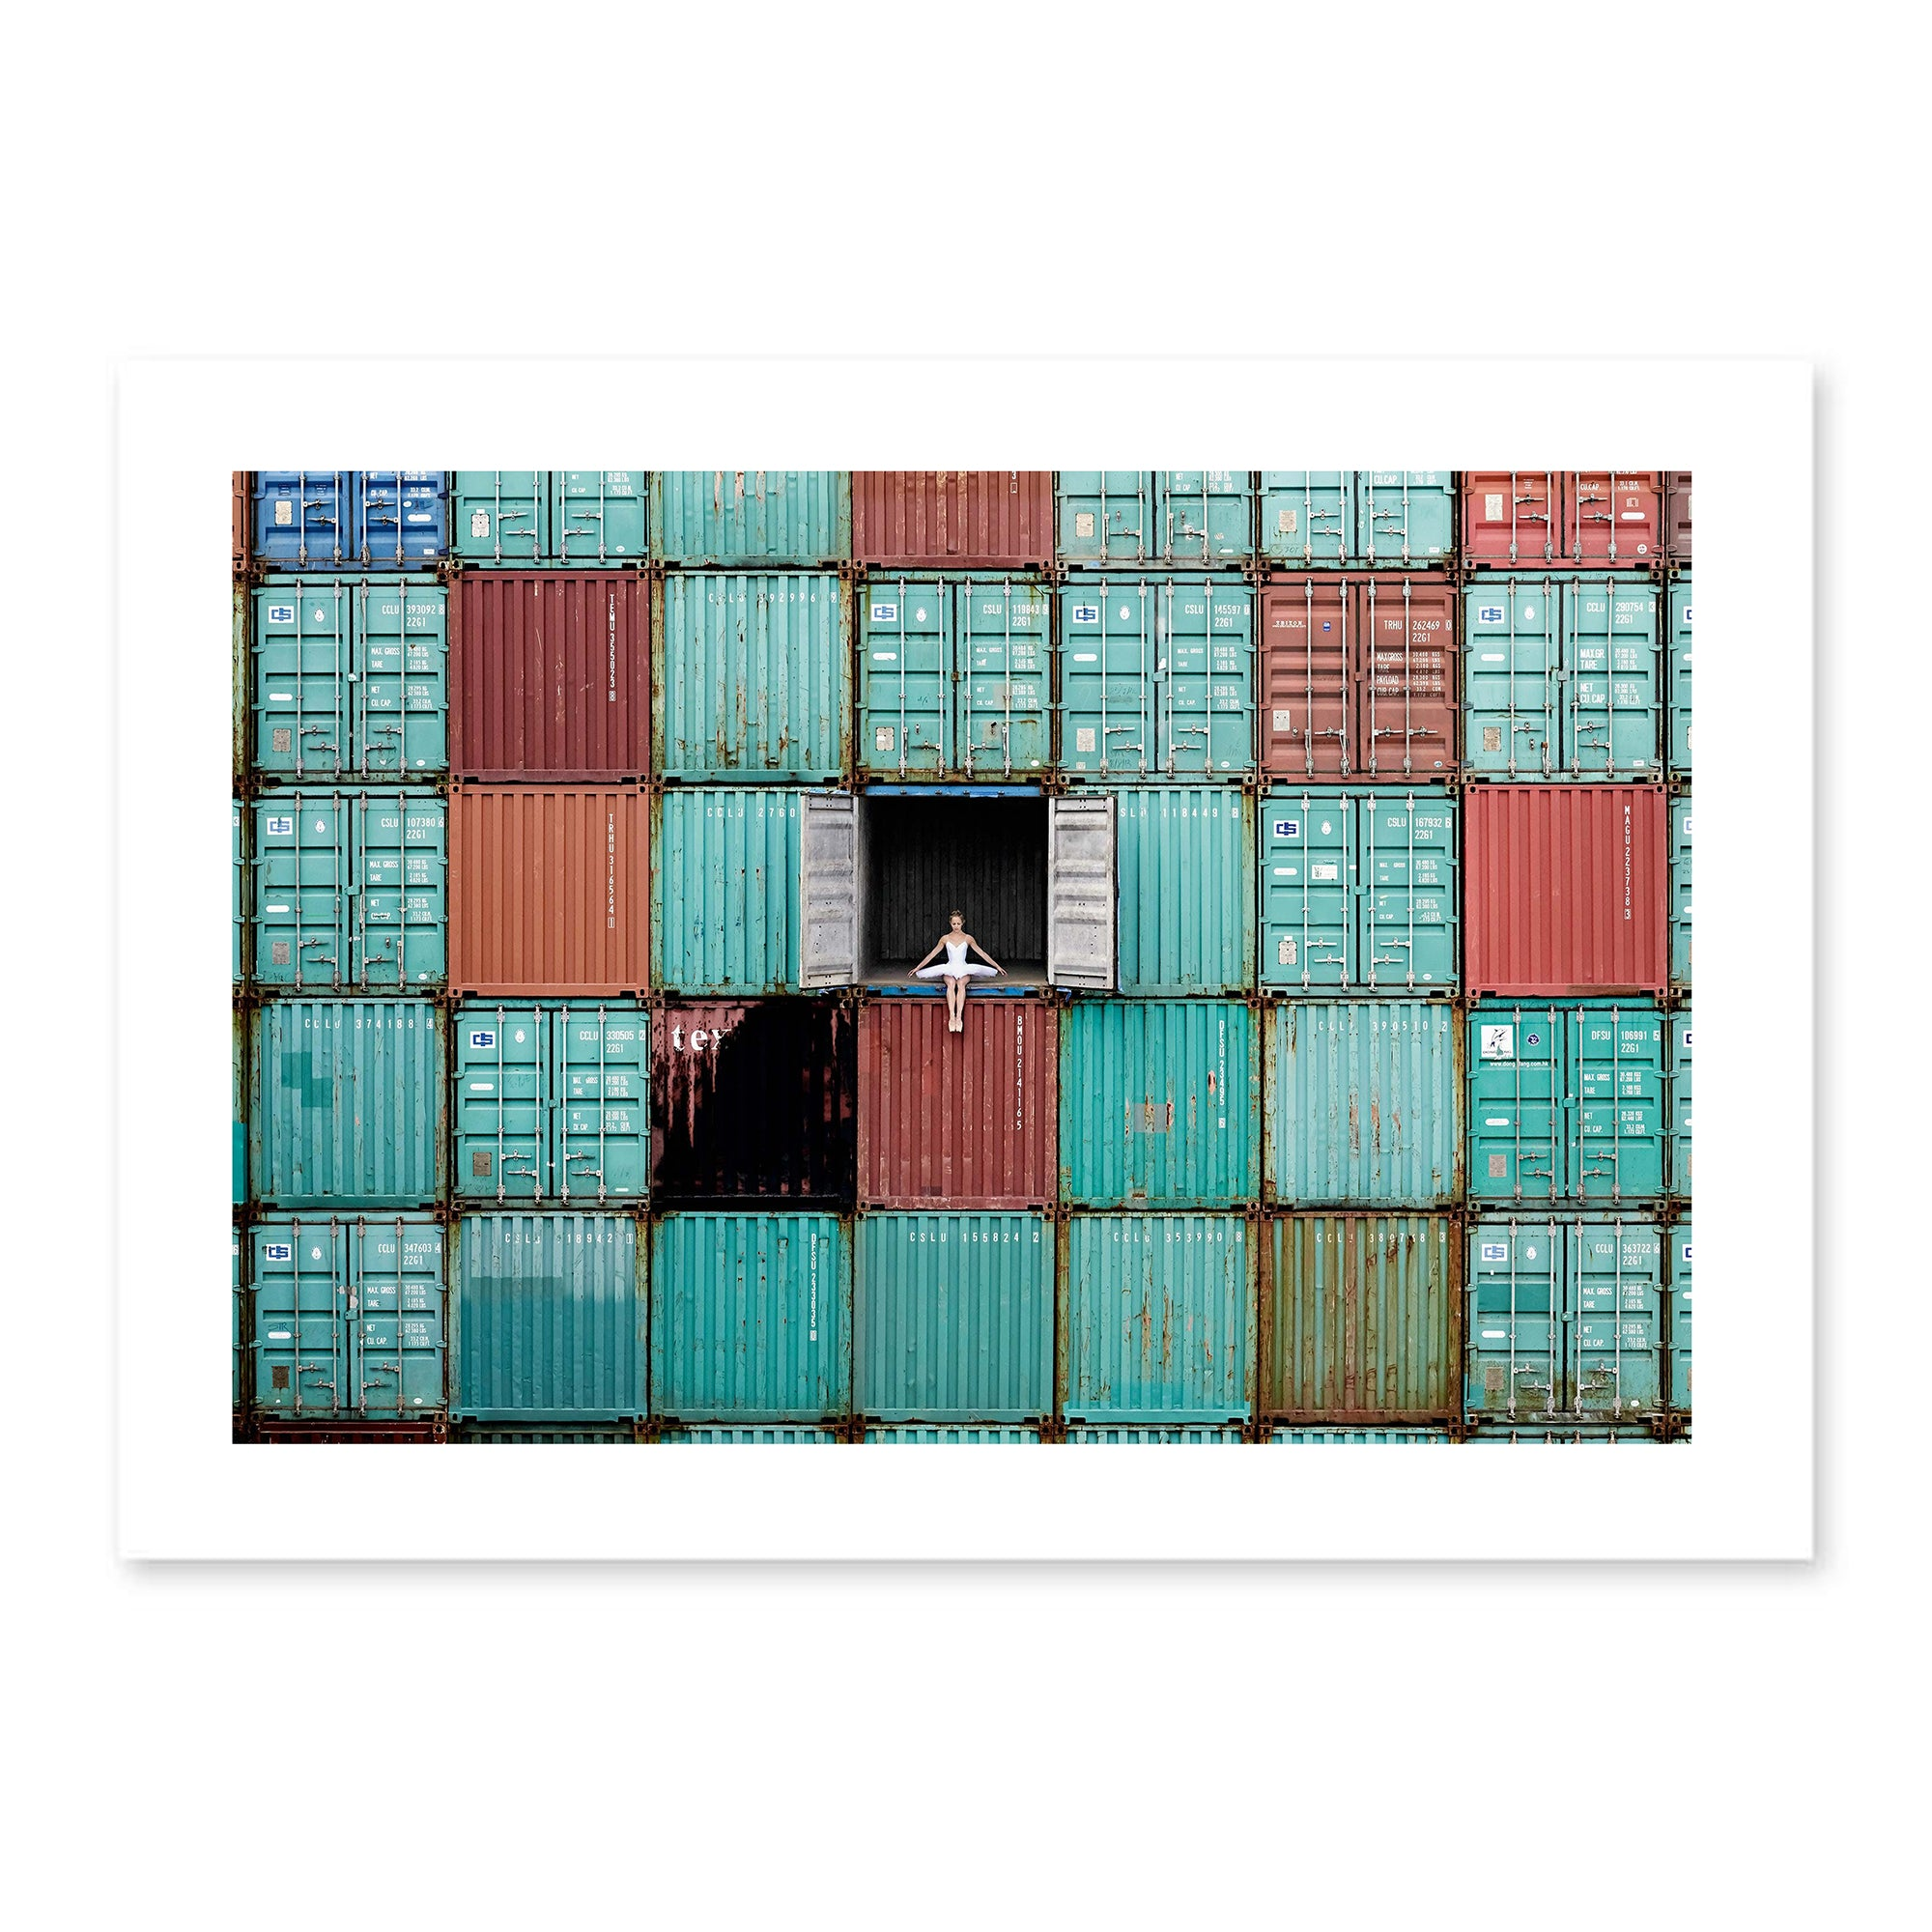 Poster The ballerina in containers, Le Havre, France, 2014